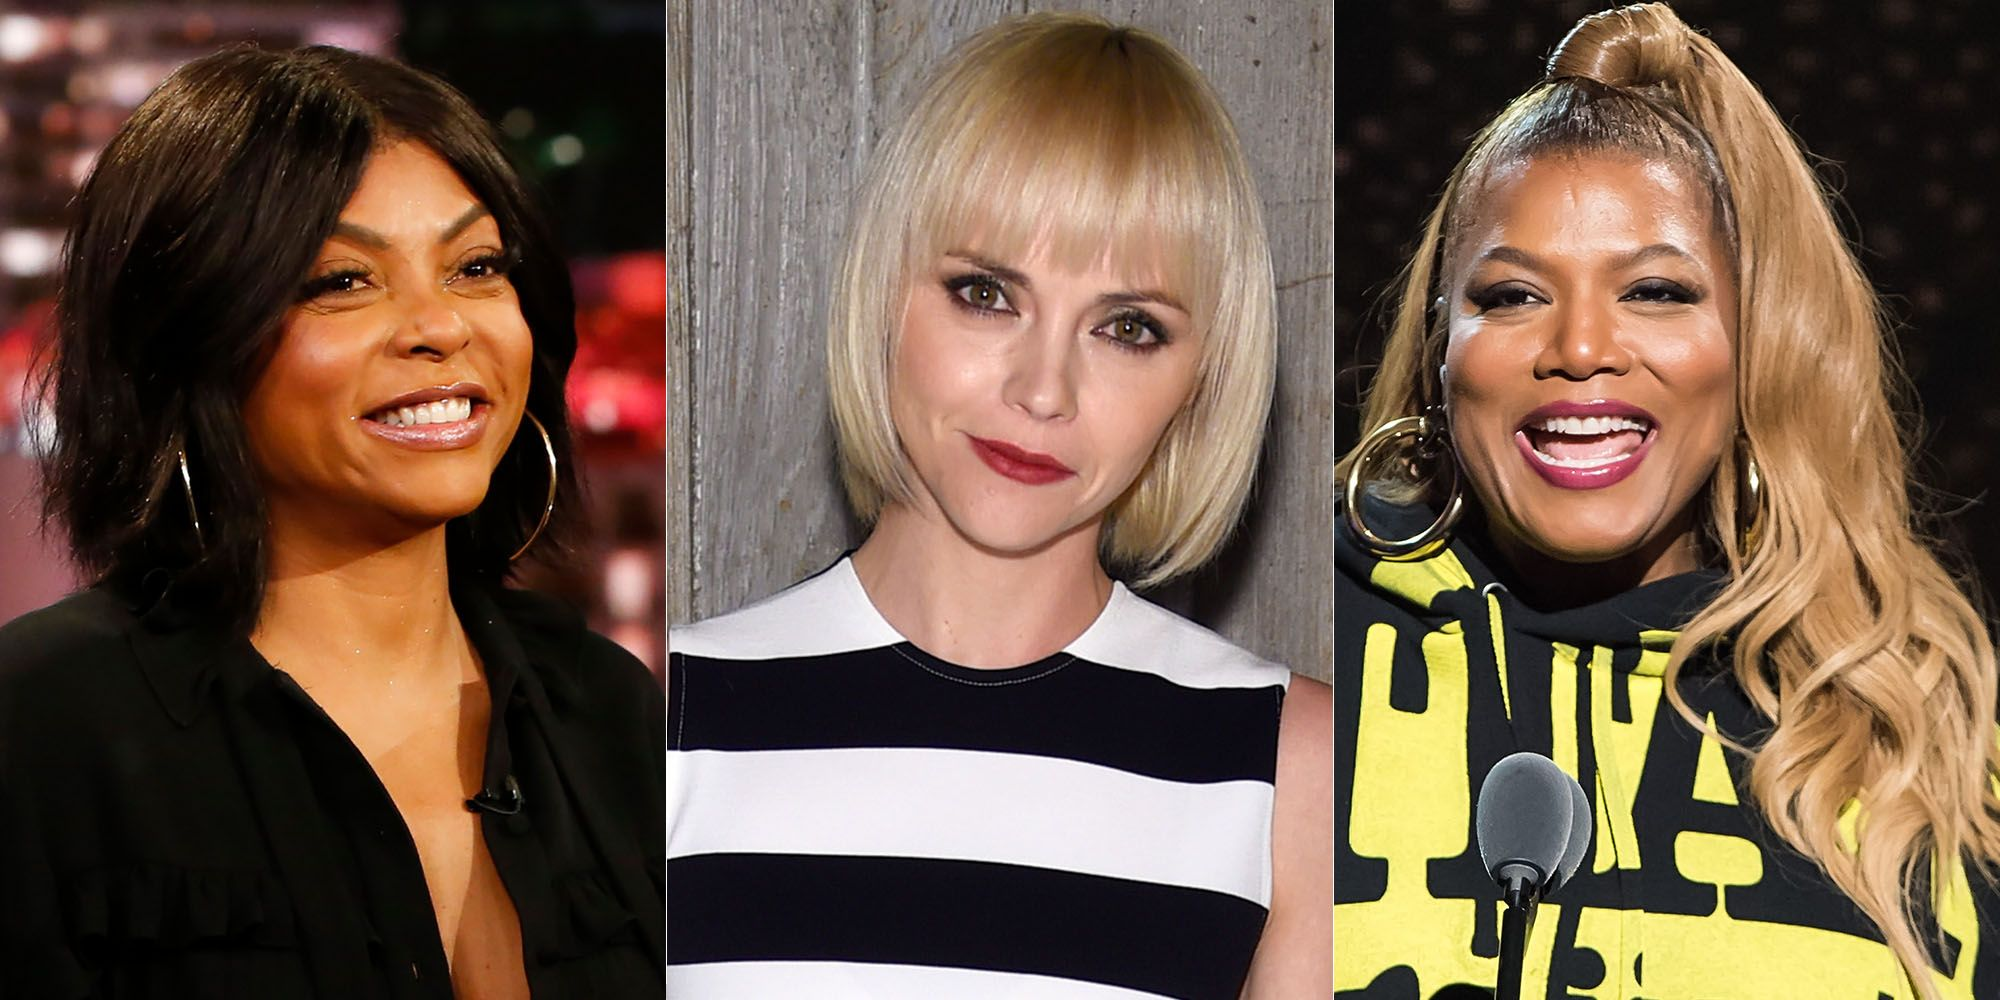 The Most Flattering Hairstyles for Round Faces